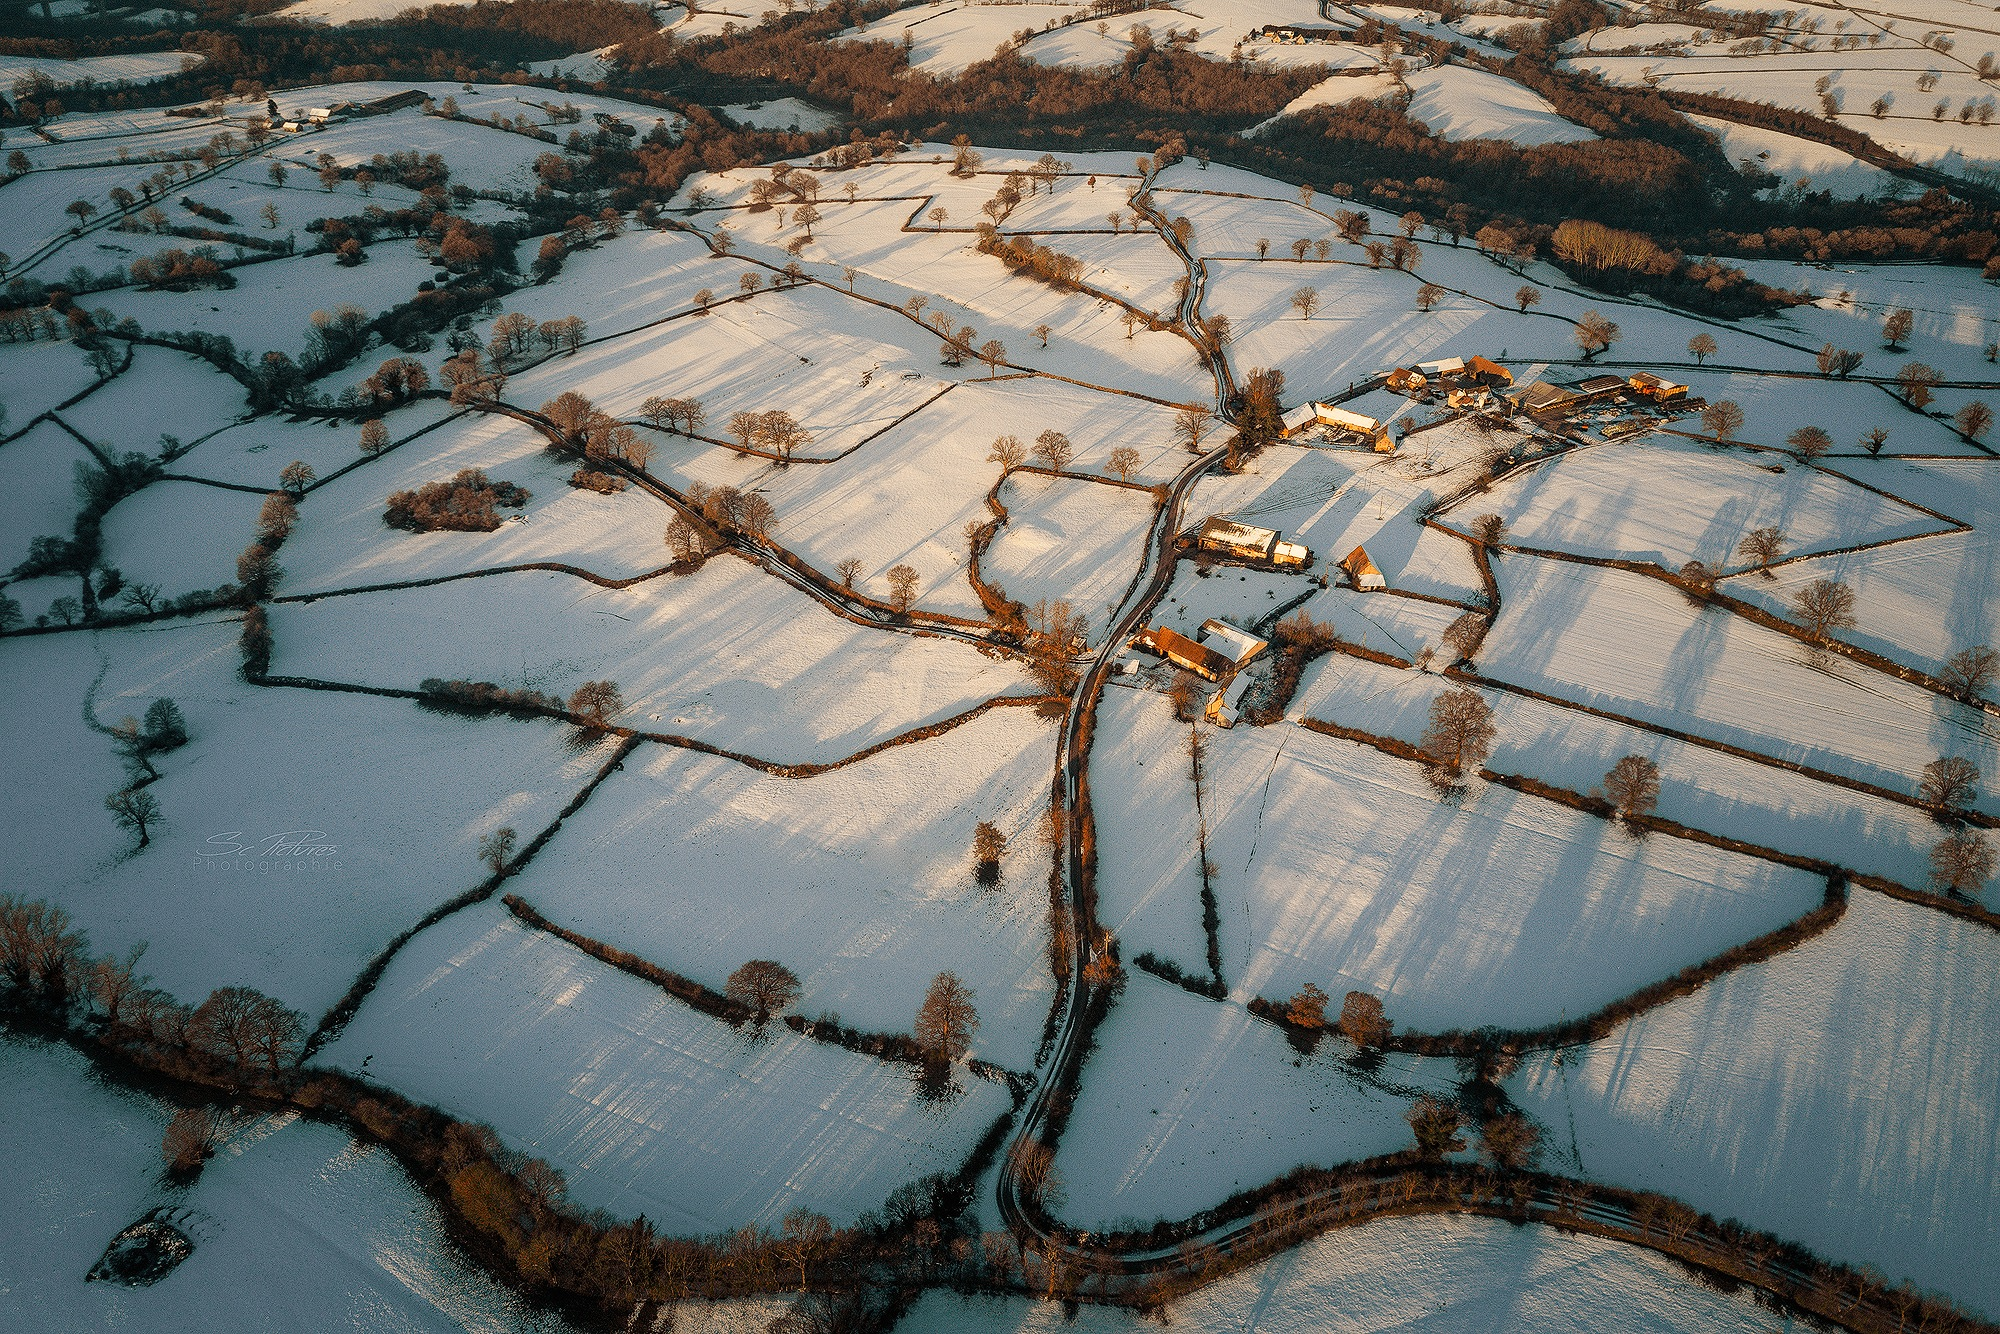 Winter in auvergne  by scpictures